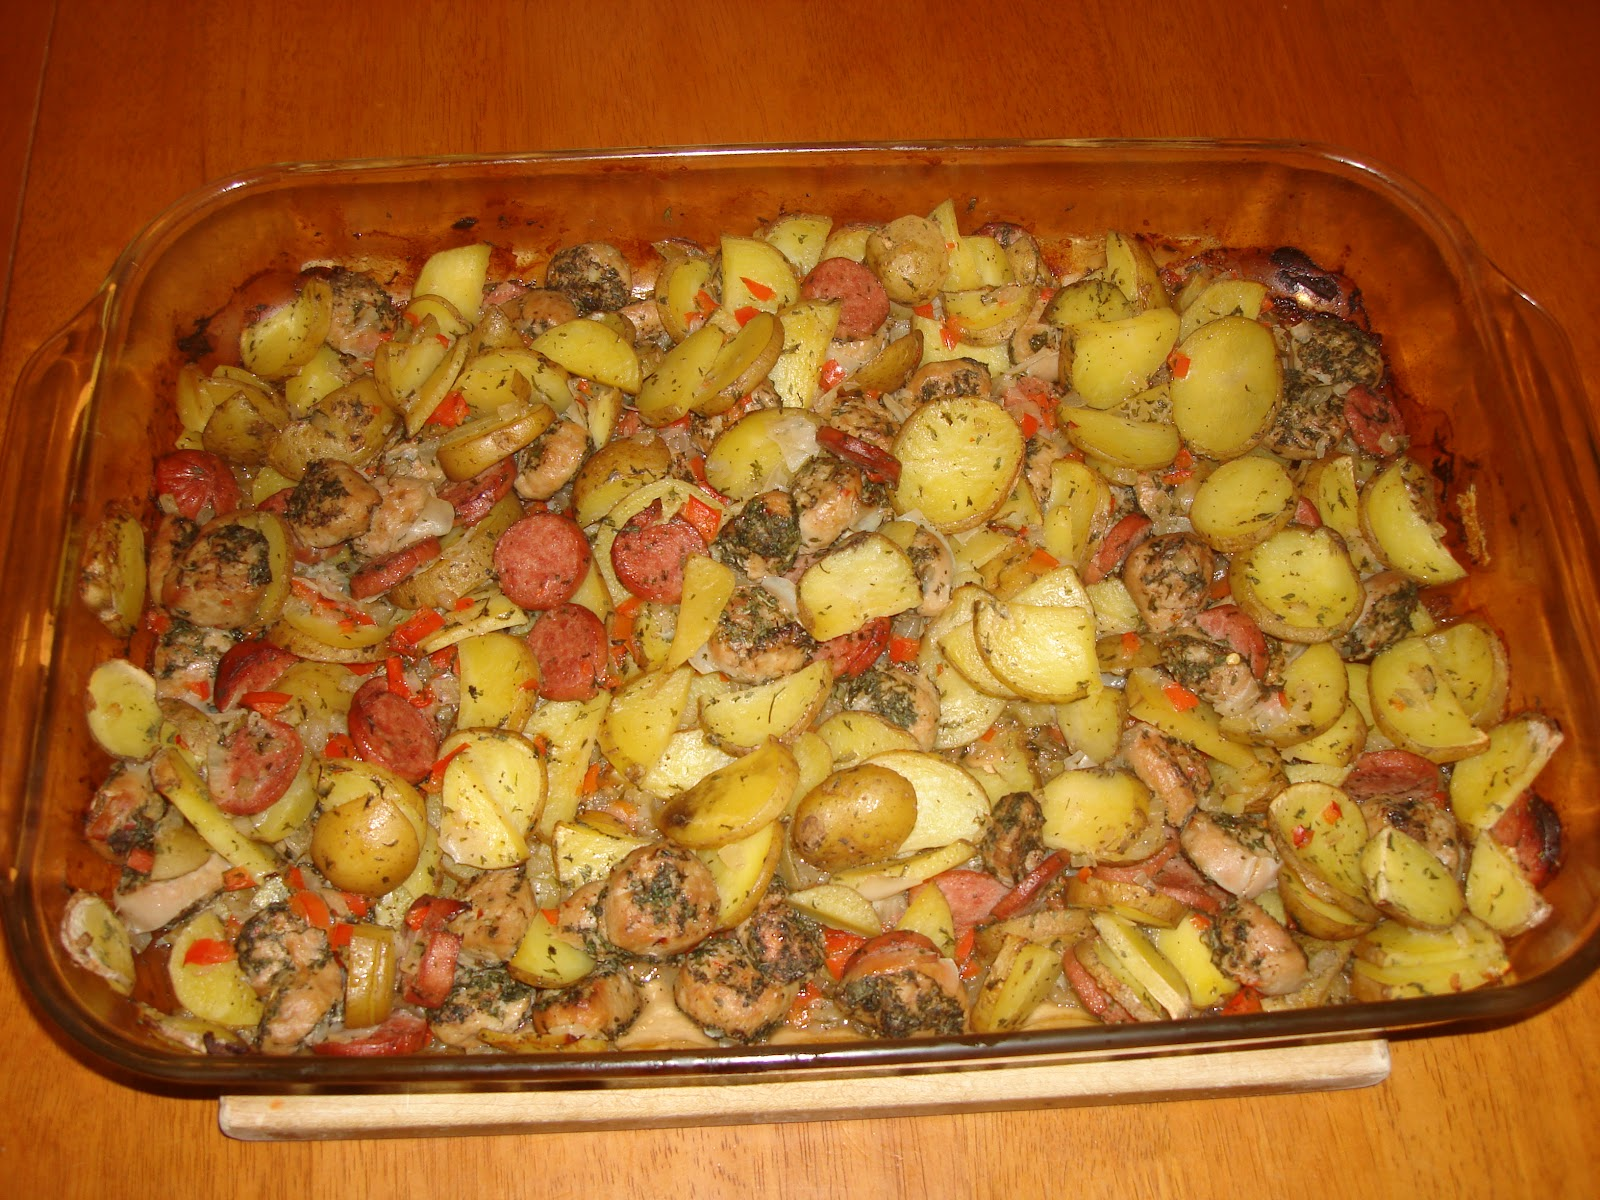 Sausage+and+Potato+Casserole+%282%29.JPG